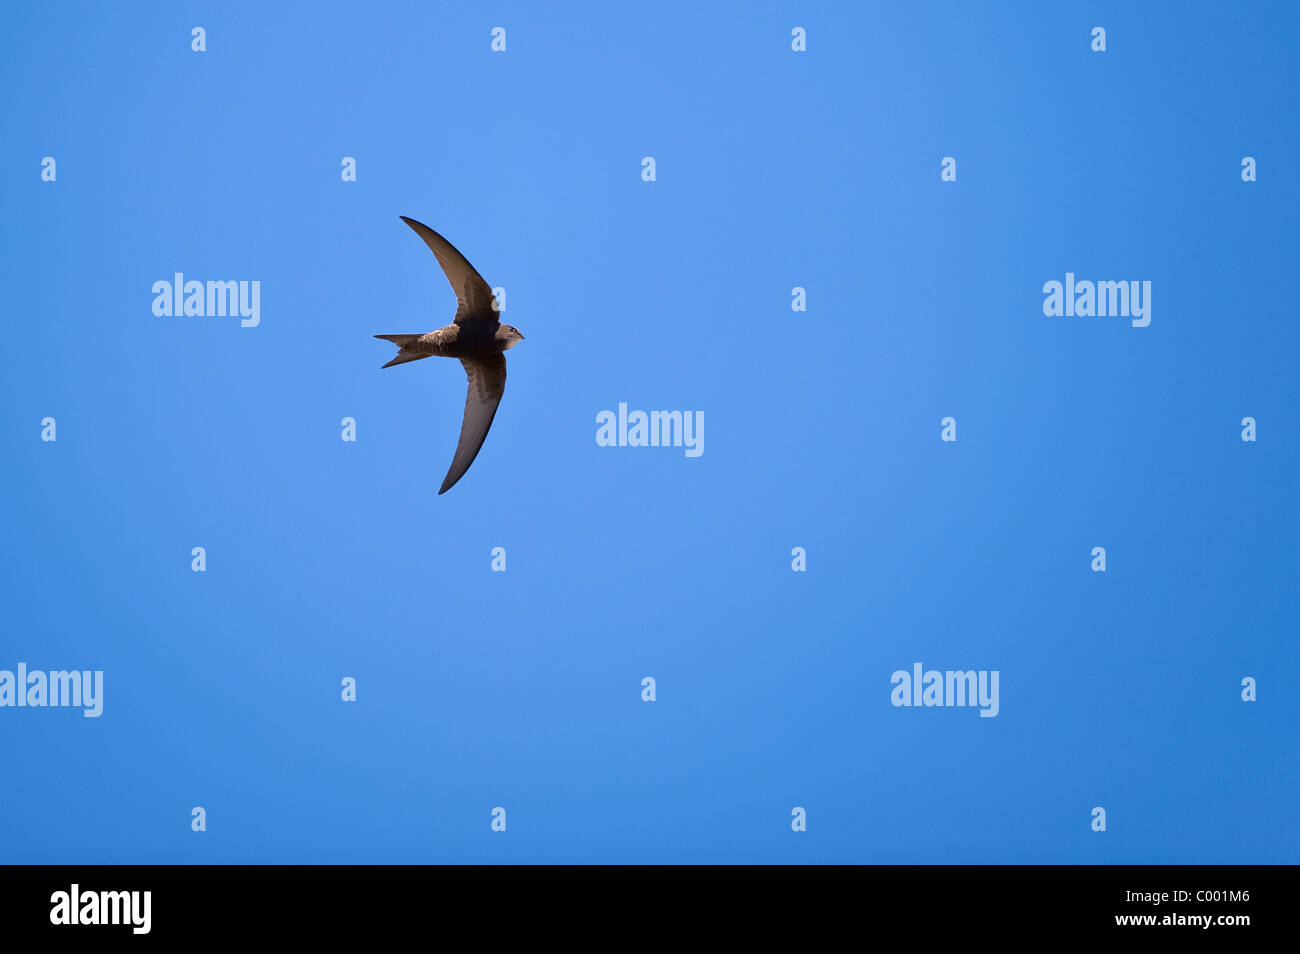 common swift, Apus apus, black martin, swift - Stock Image